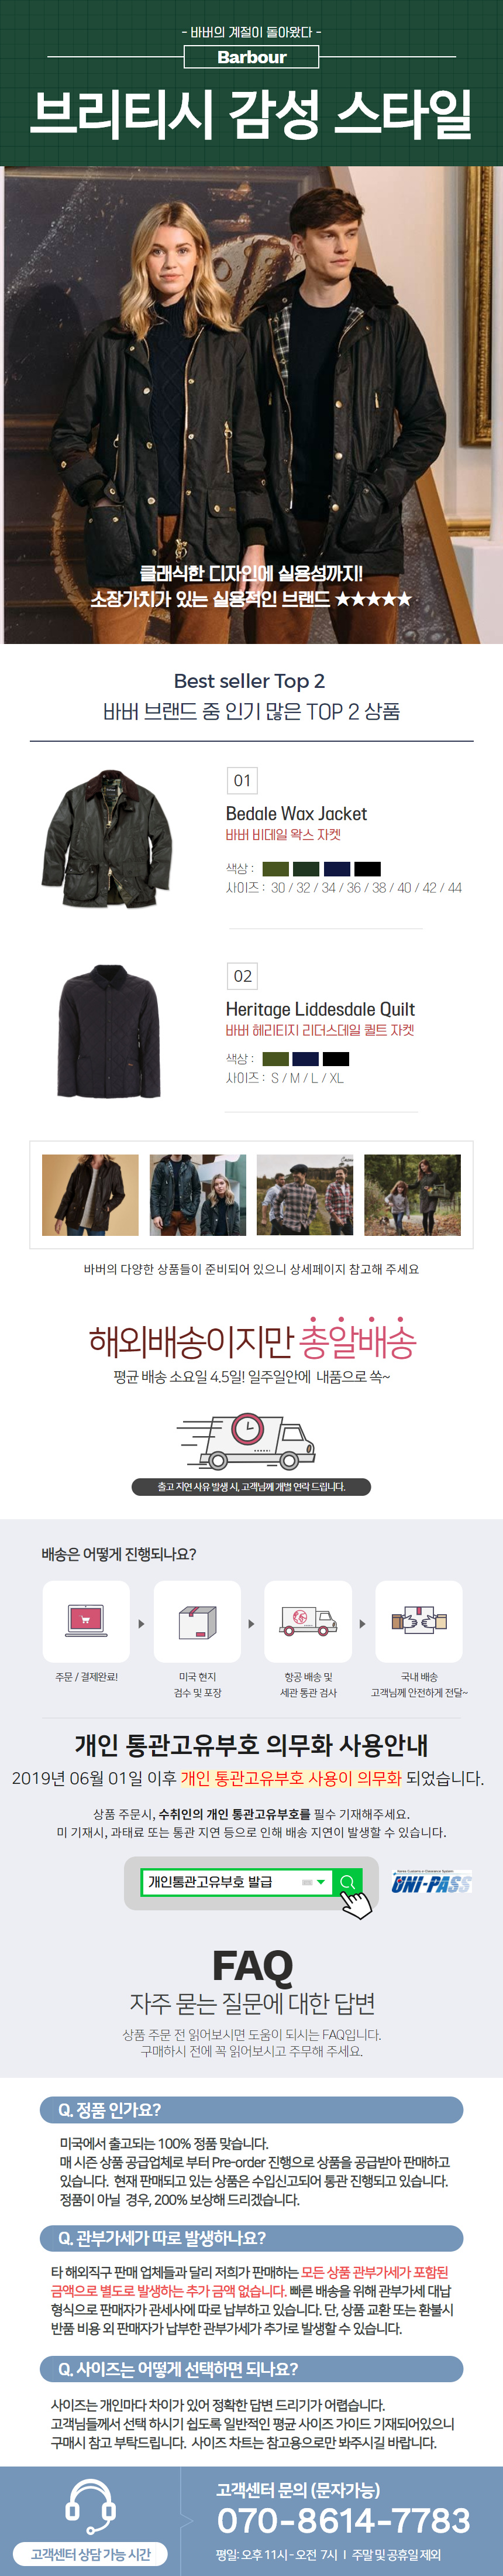 BARBOUR%20INTRO%20version_MJ02.jpg